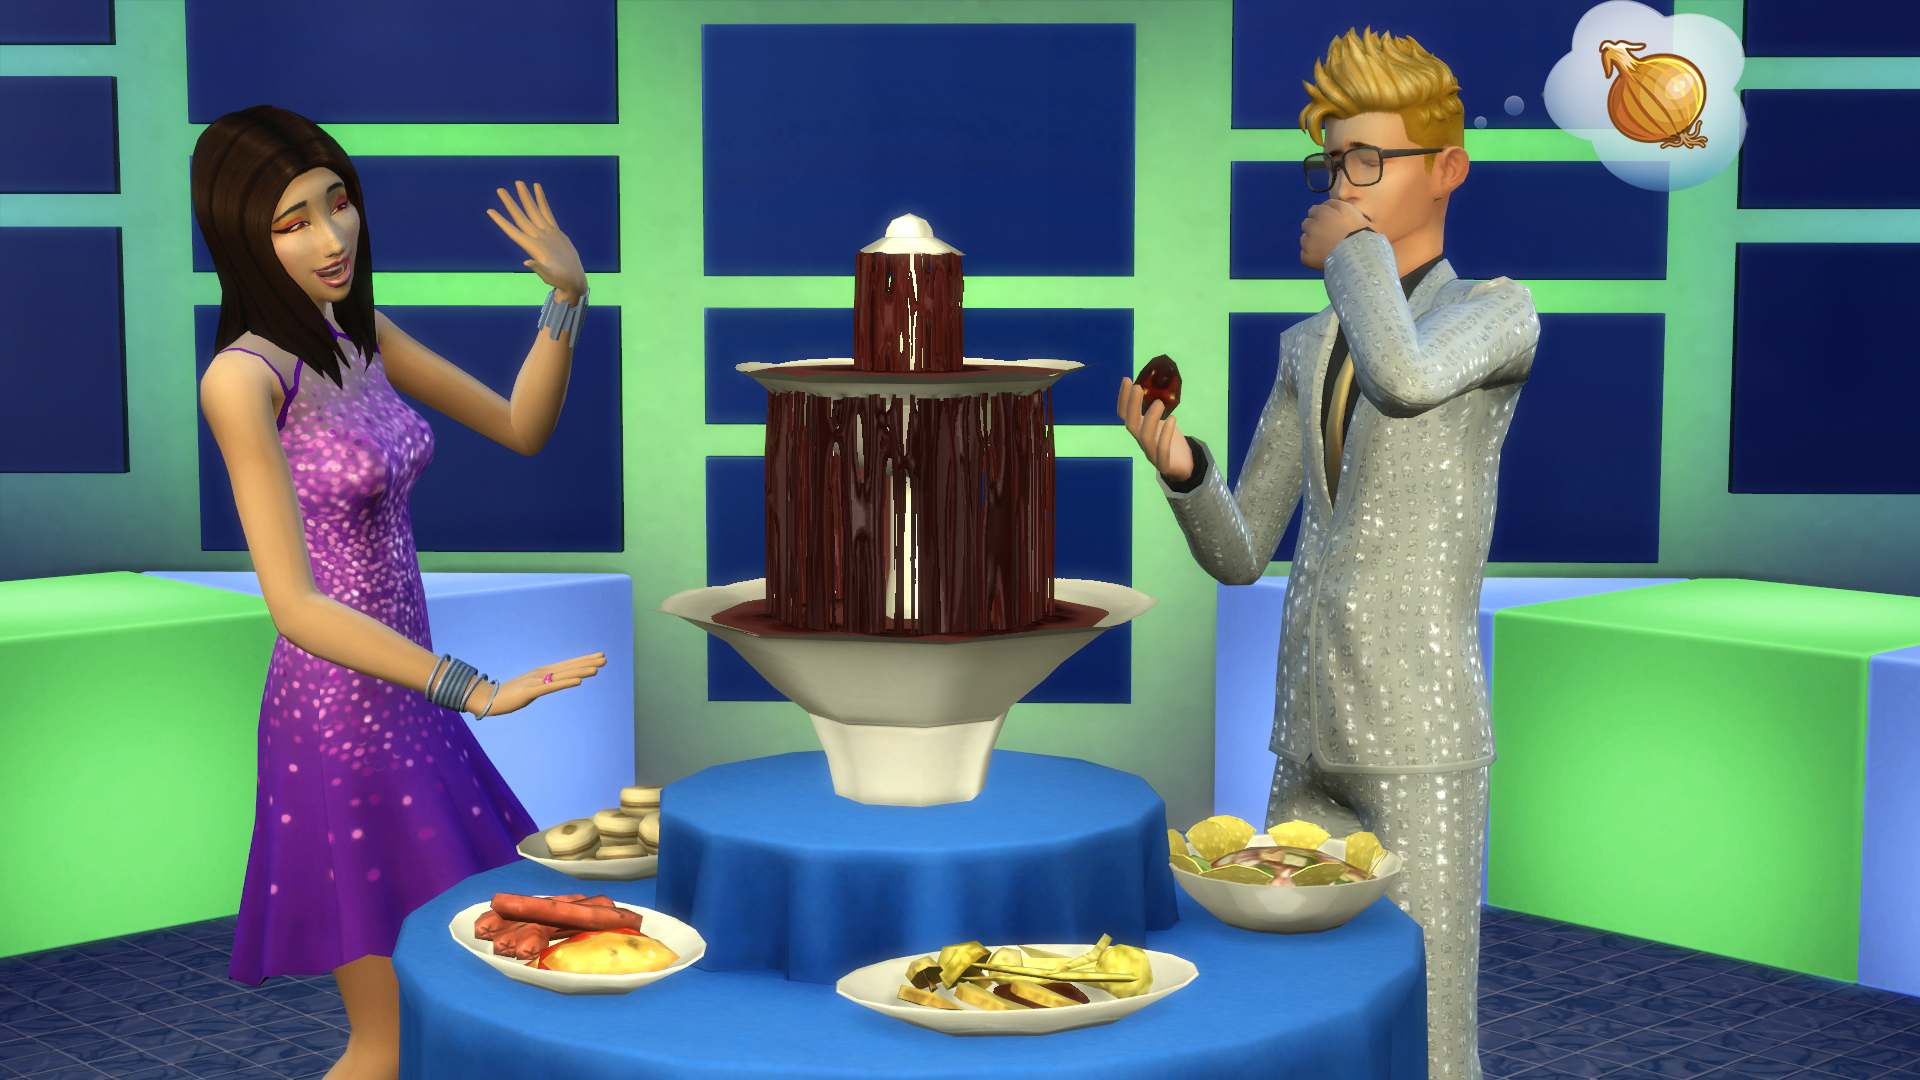 sims 4 video game review on